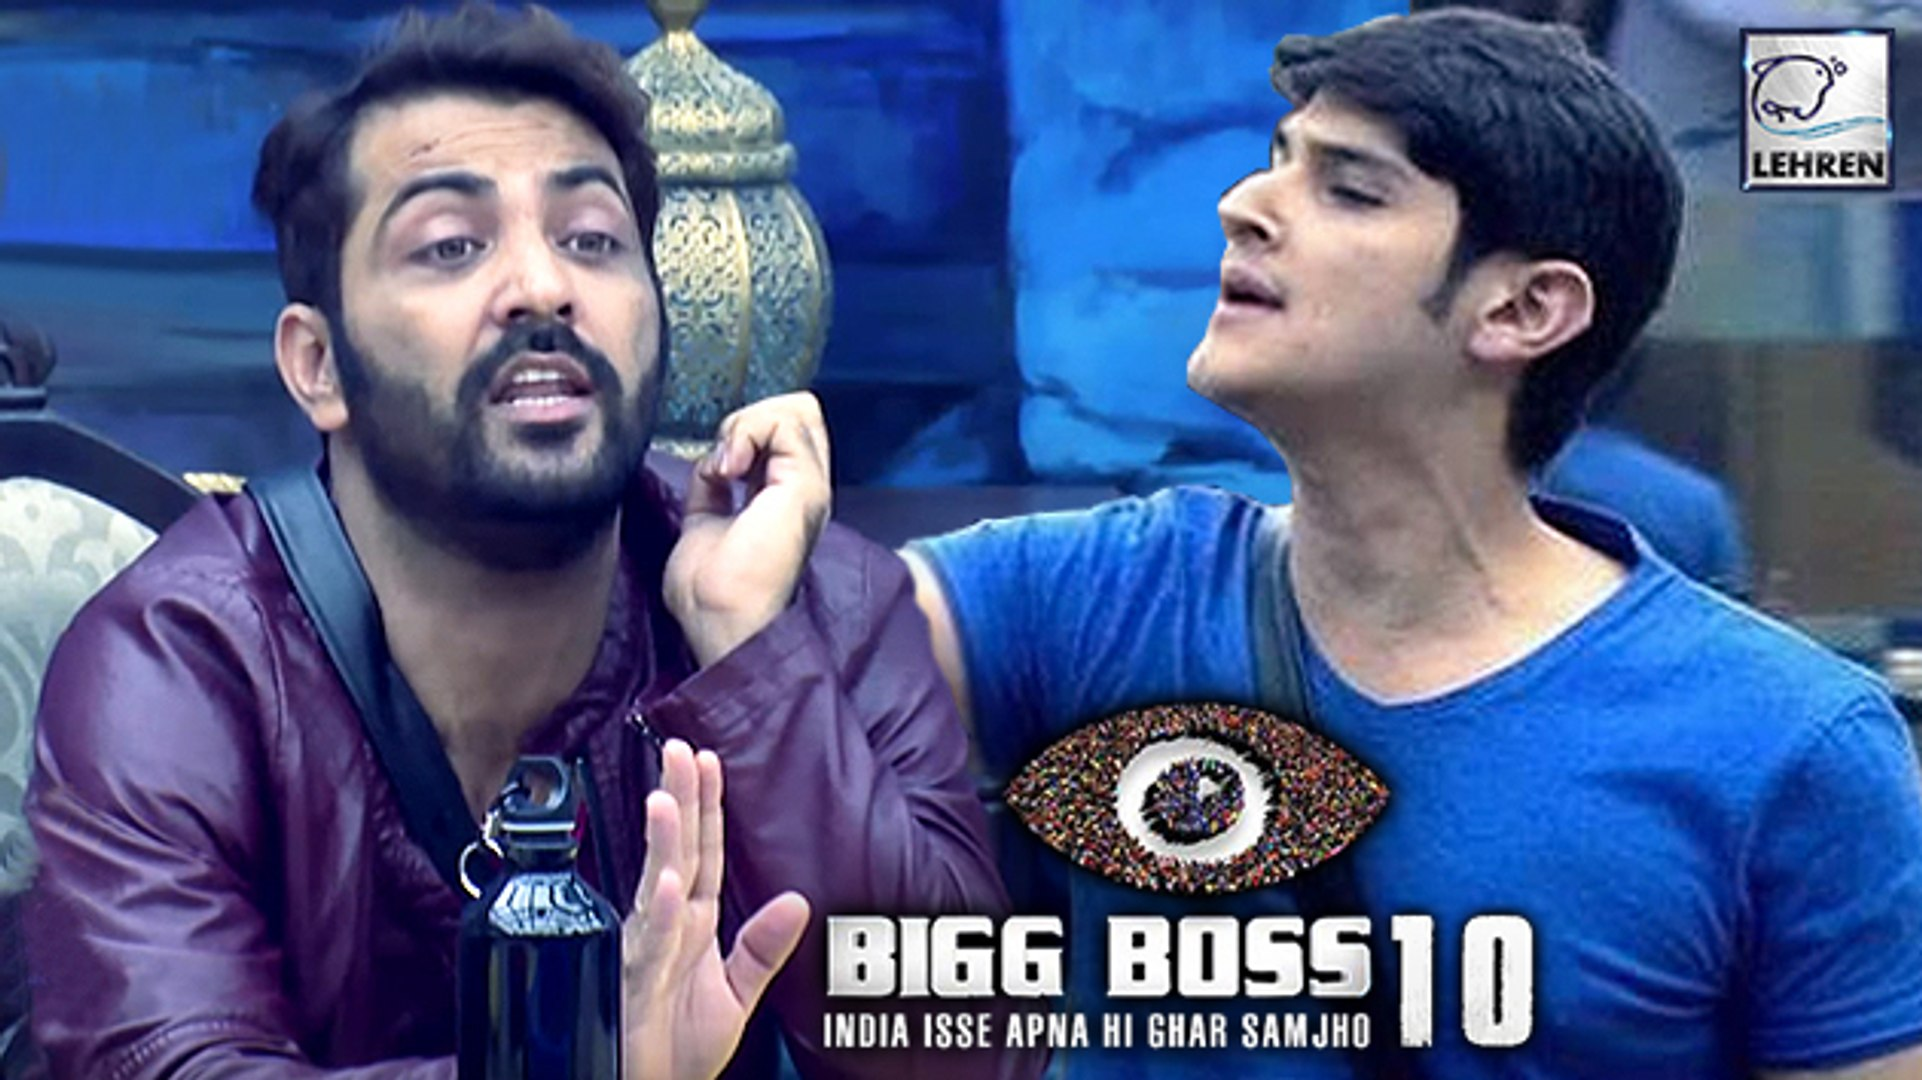 Bigg Boss 10: Rohan Mehra & Manoj Manu's HUGE FIGHT